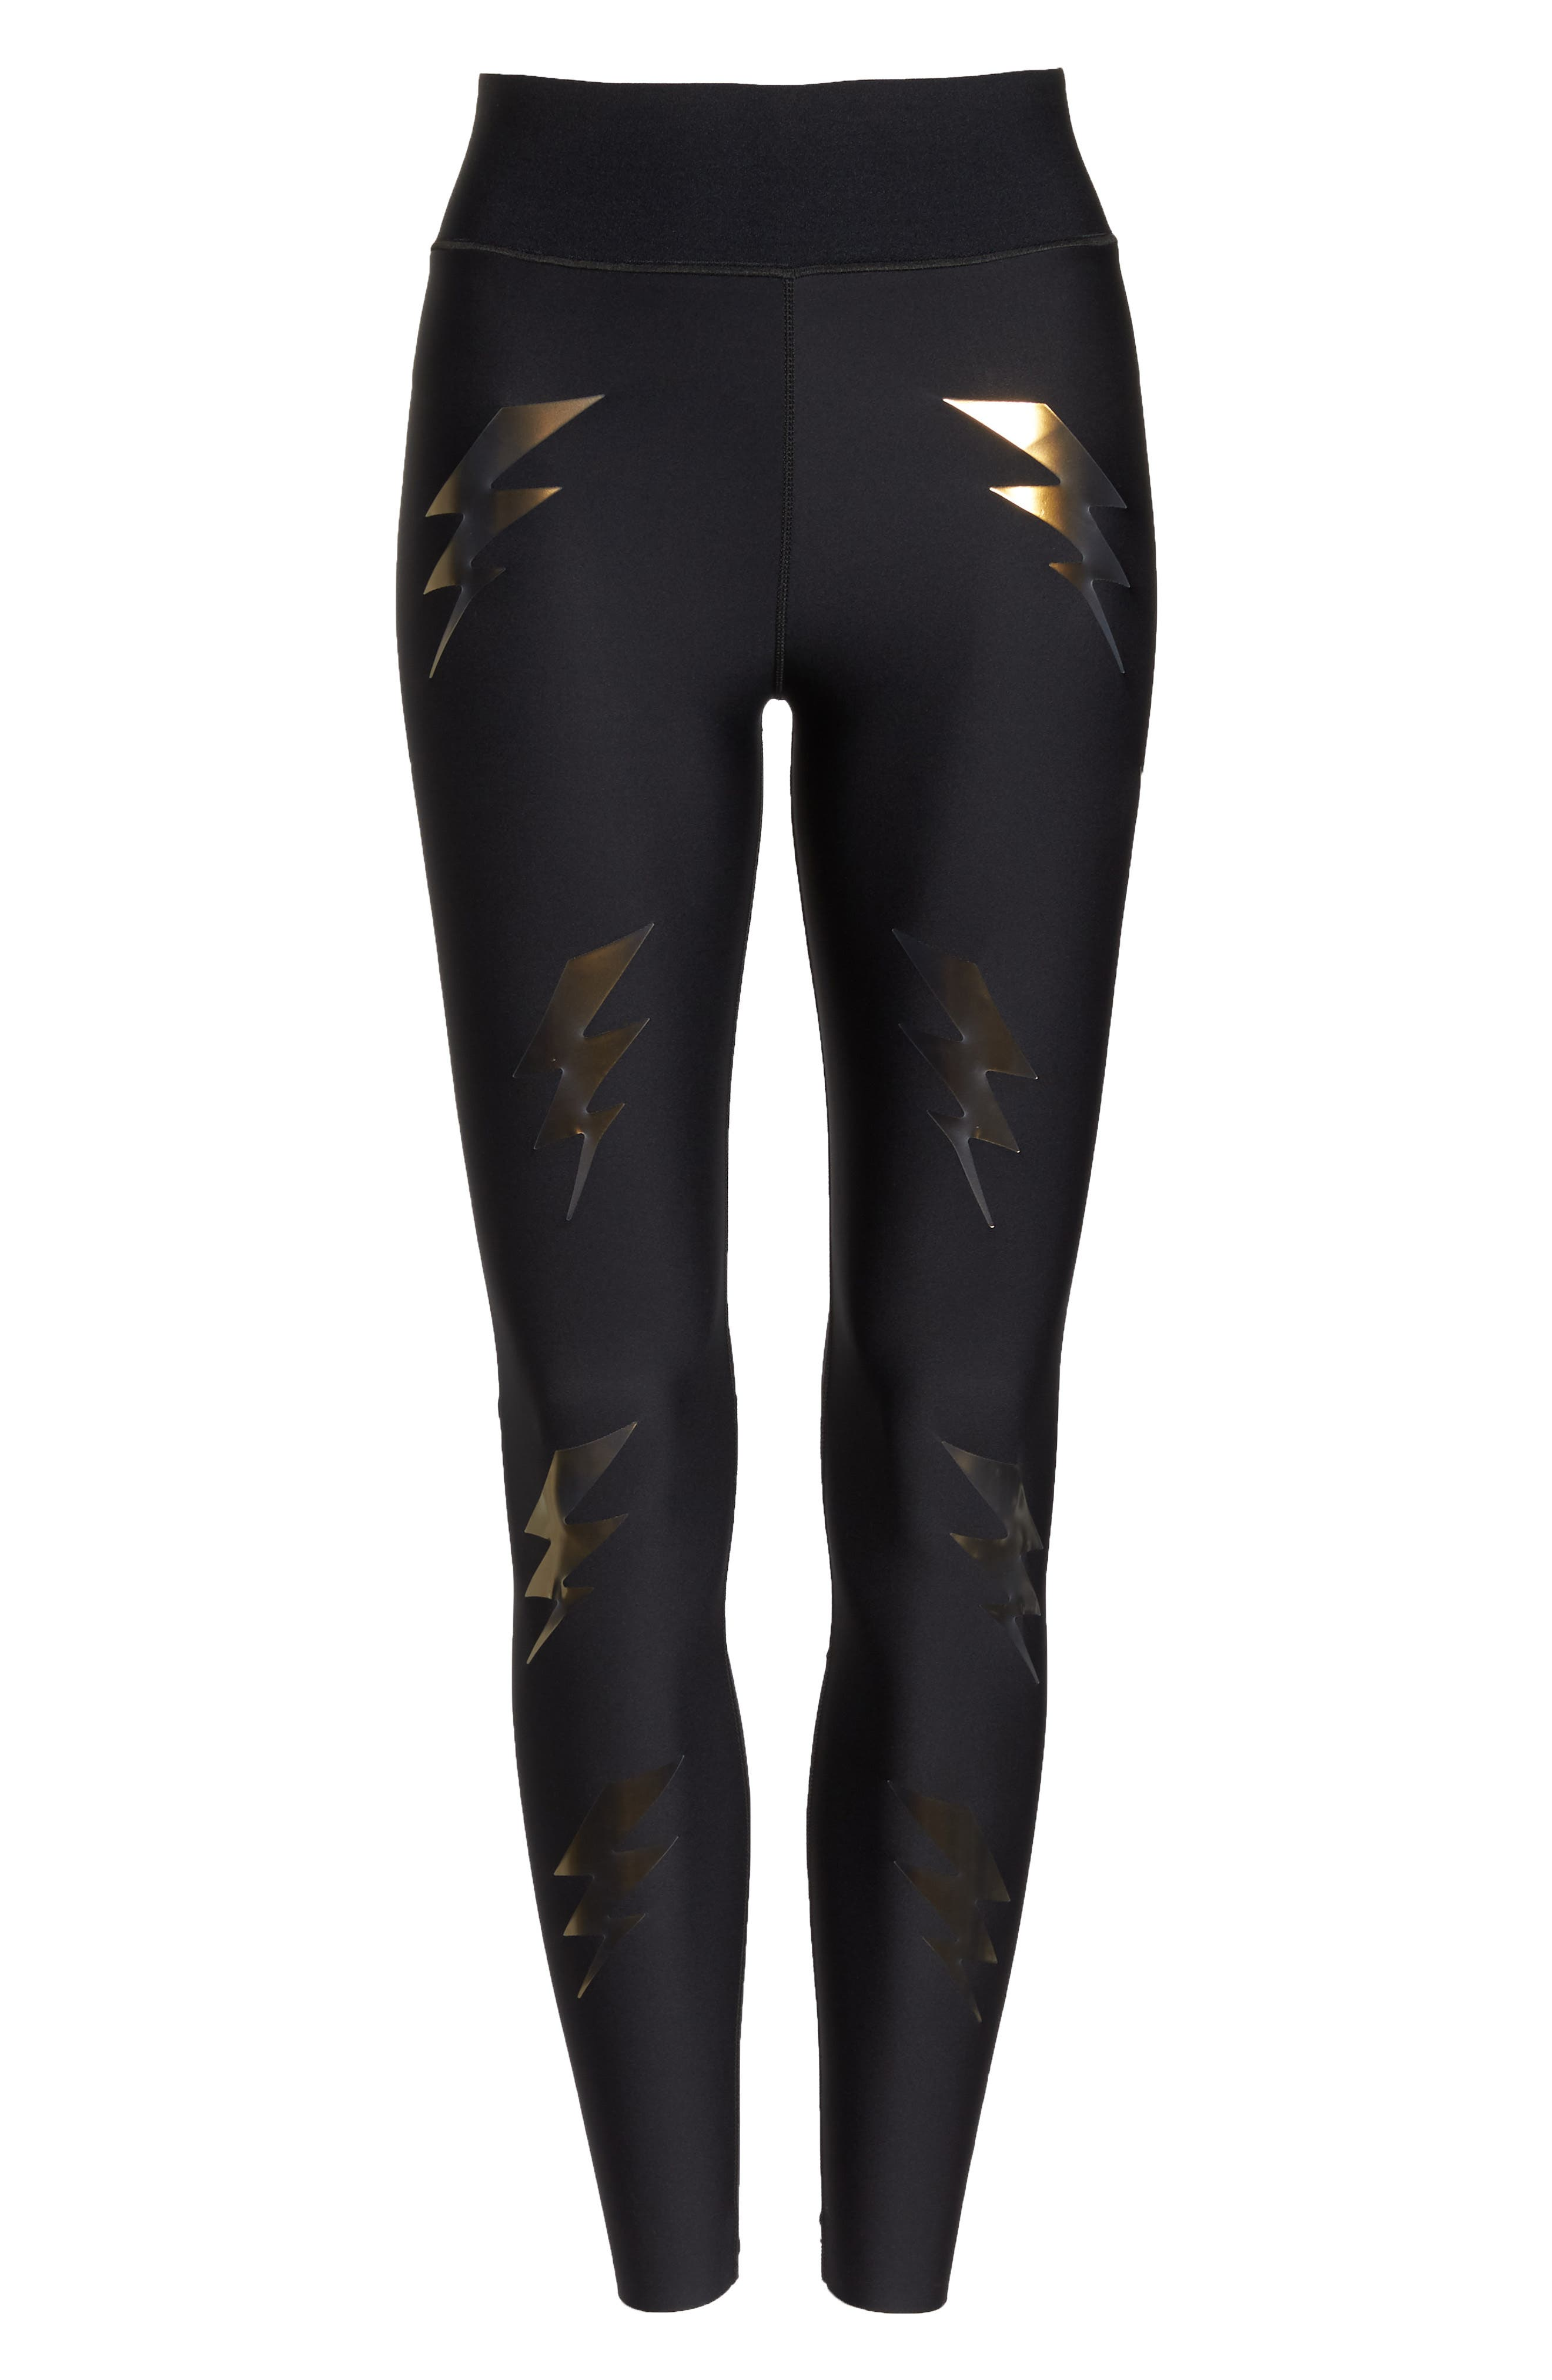 High Rise Leggings,                             Alternate thumbnail 7, color,                             003